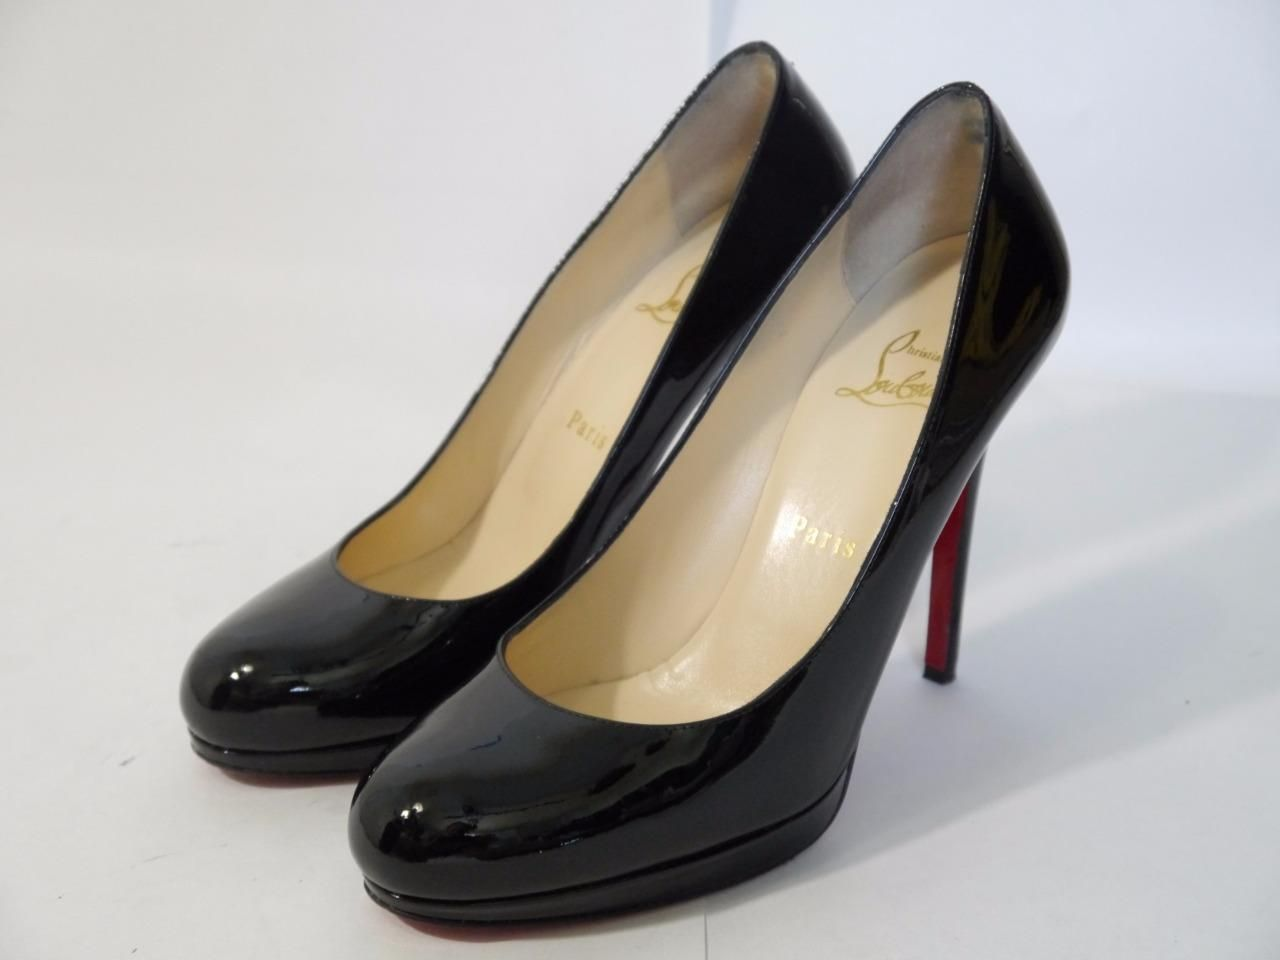 sports shoes 6278c 36b1d Christian Louboutin New Simple Pumps 120 Black Patent ...